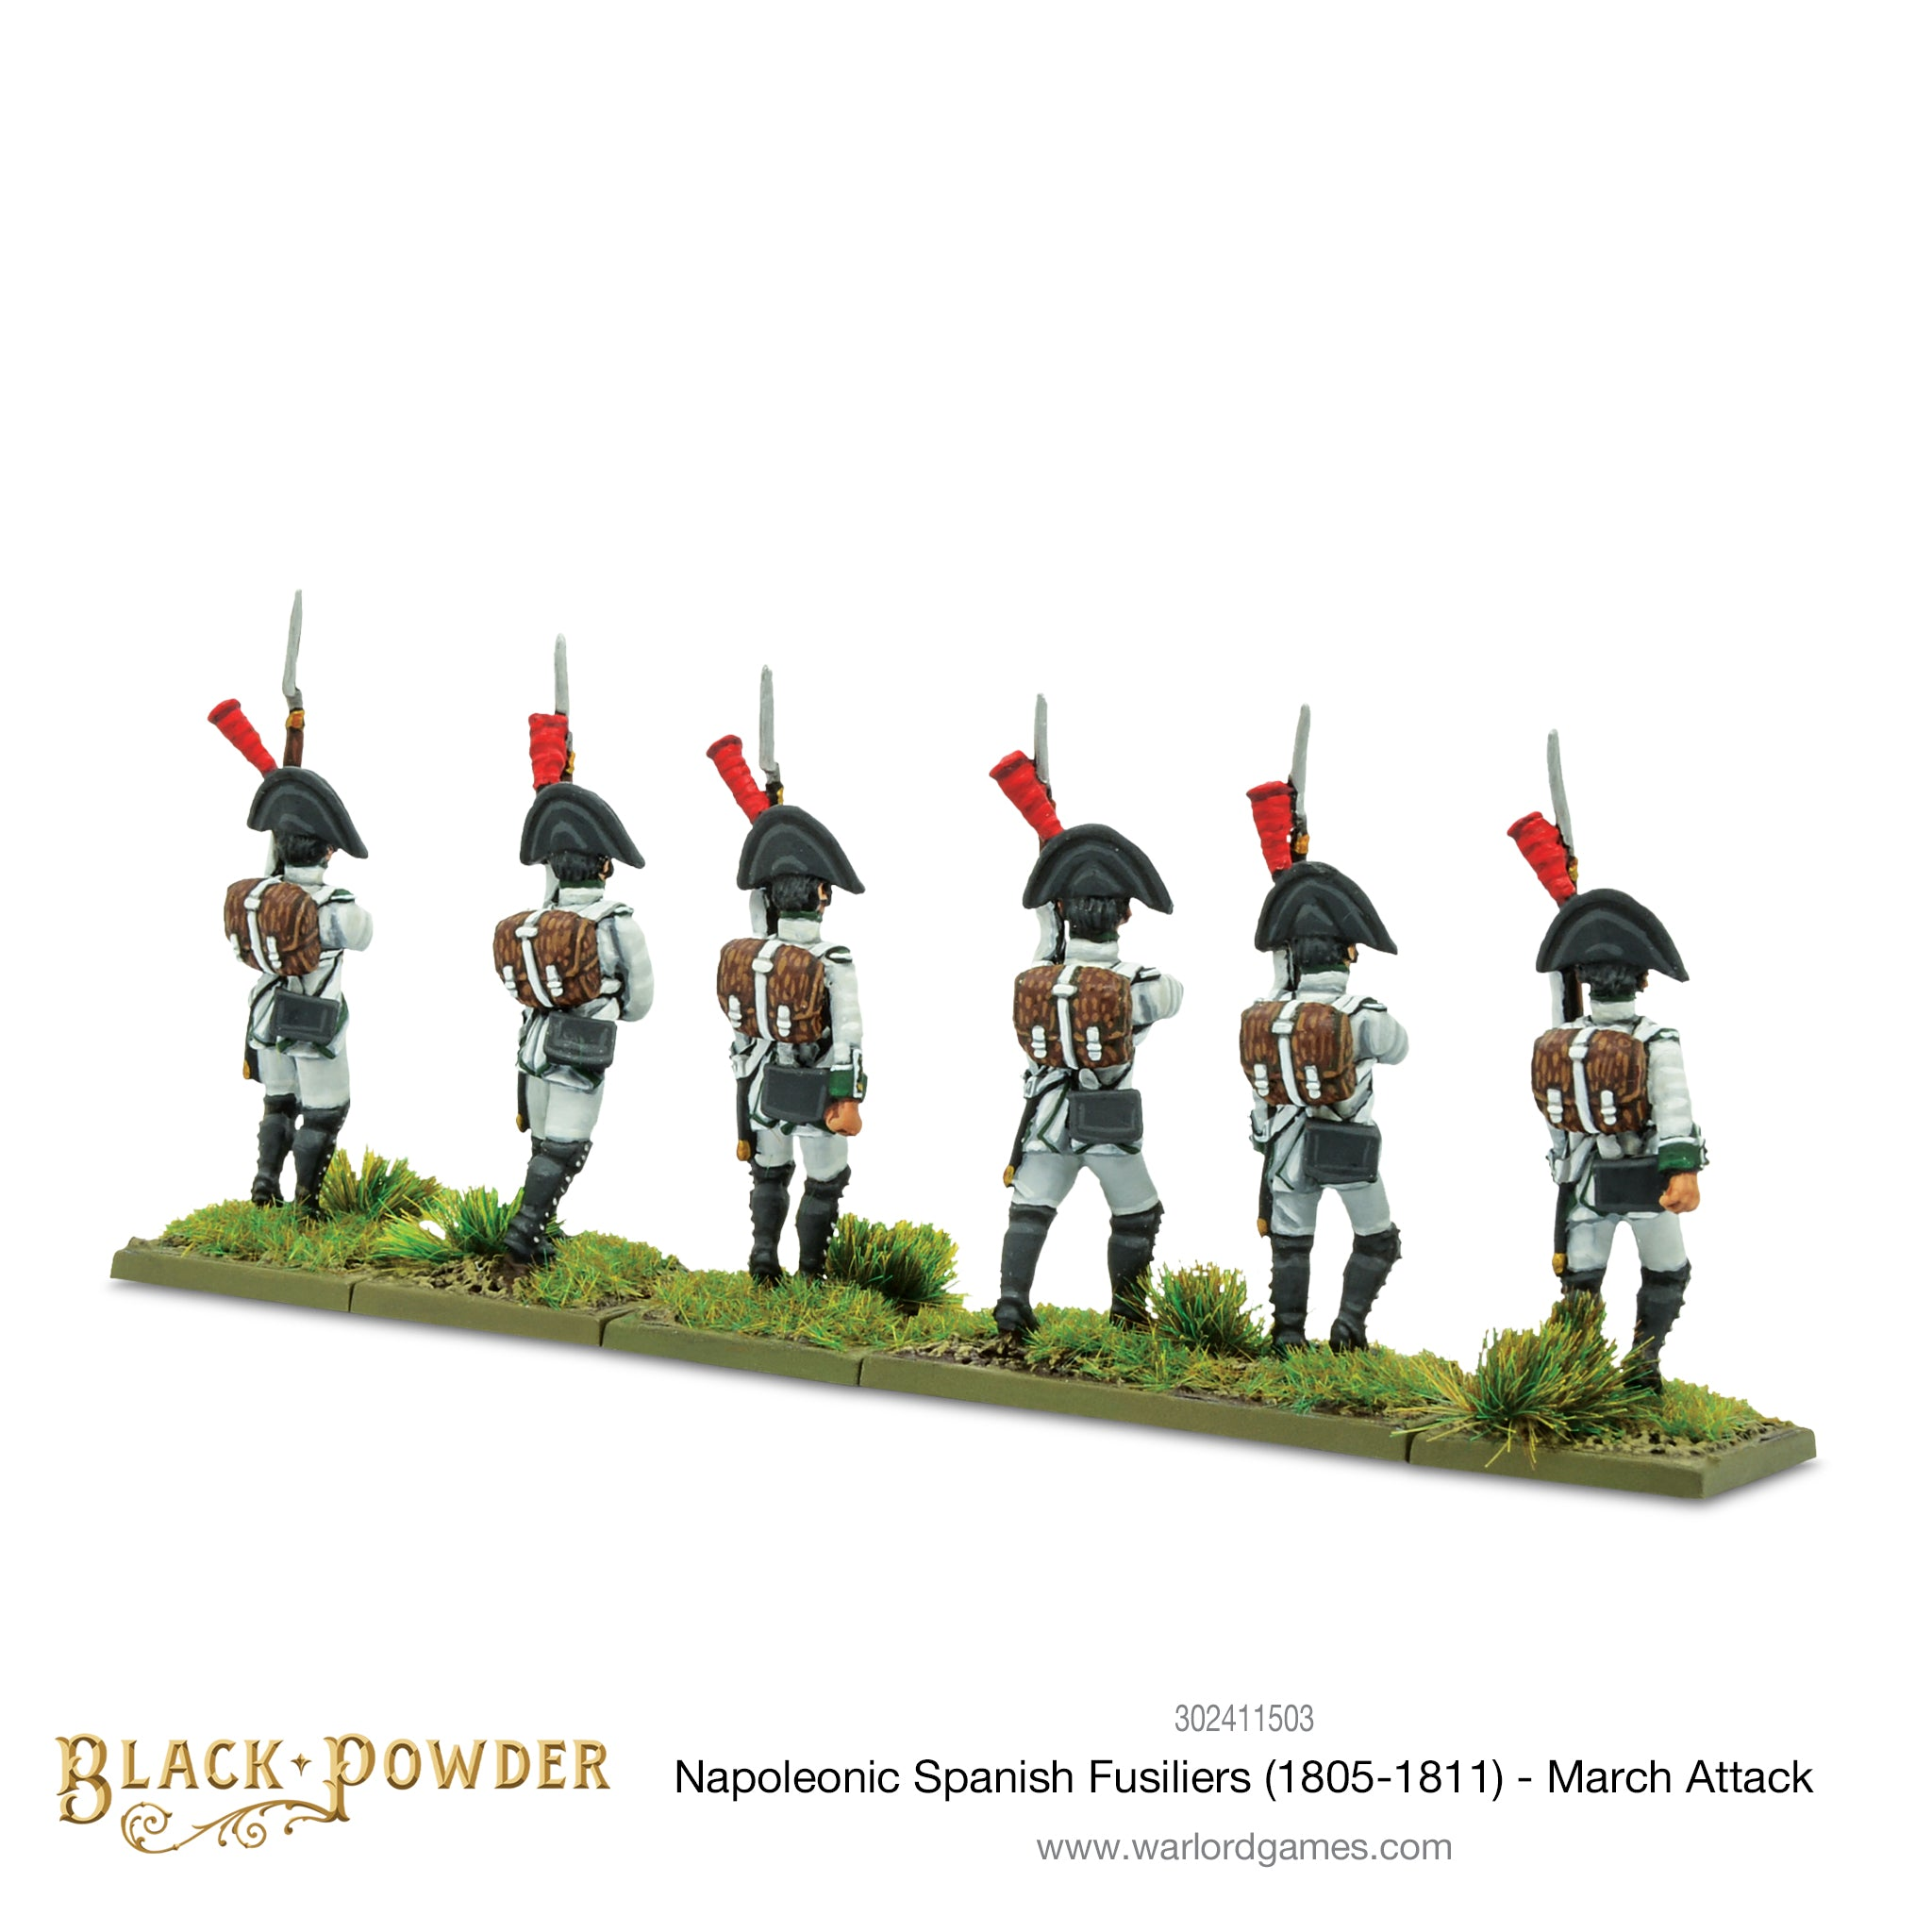 Napoleonic Spanish Fusiliers (1805-1811) - March Attack